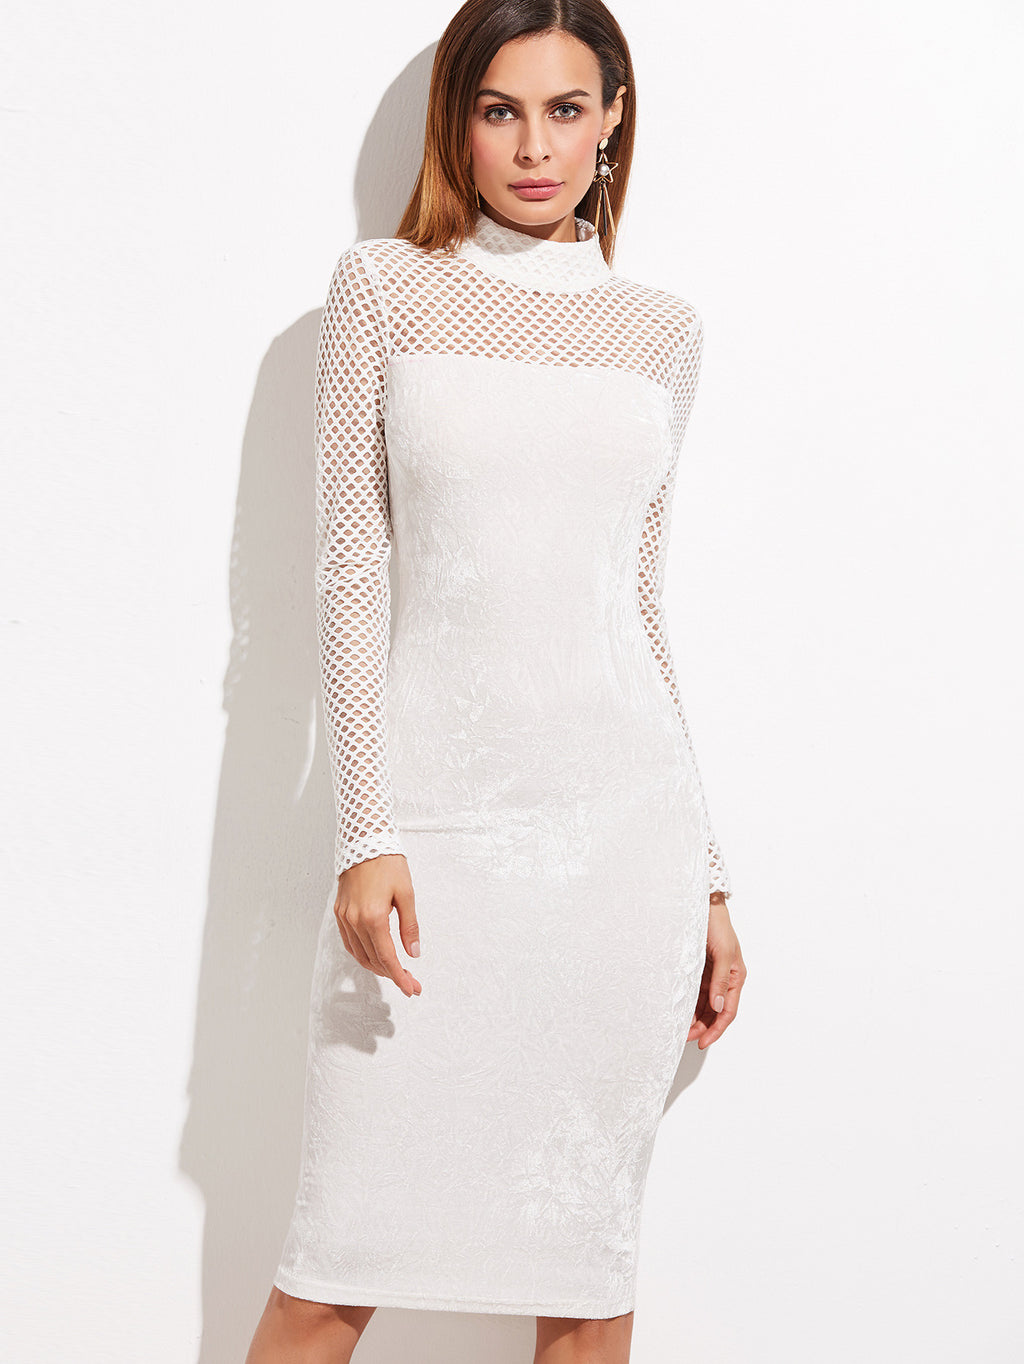 Belle White Velvet Dress